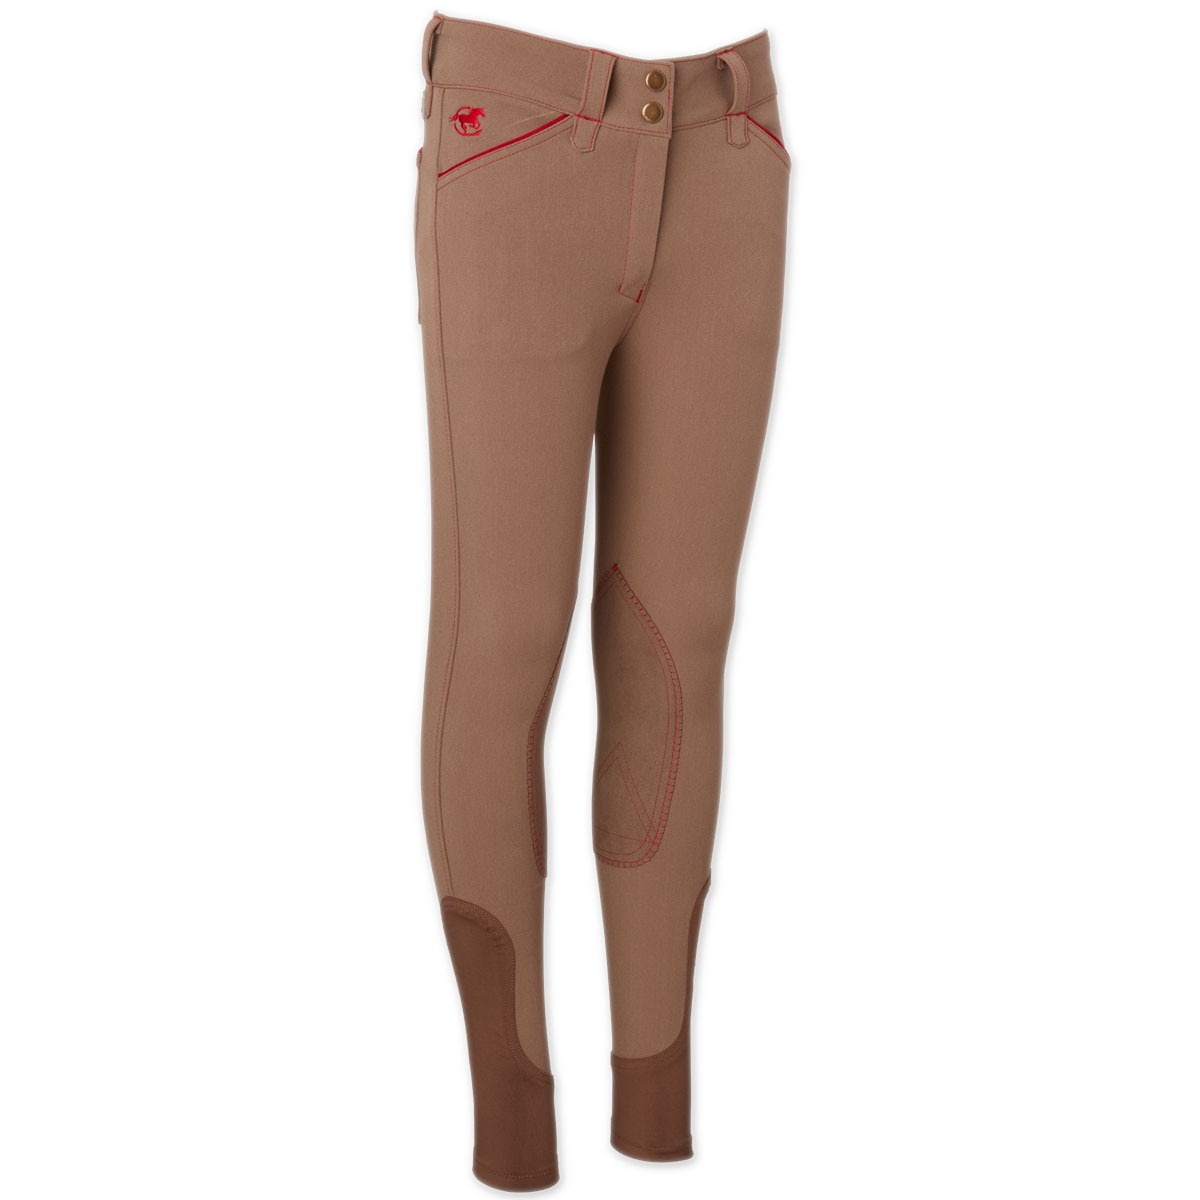 Piper Breeches by SmartPak- Girls Knee Patch